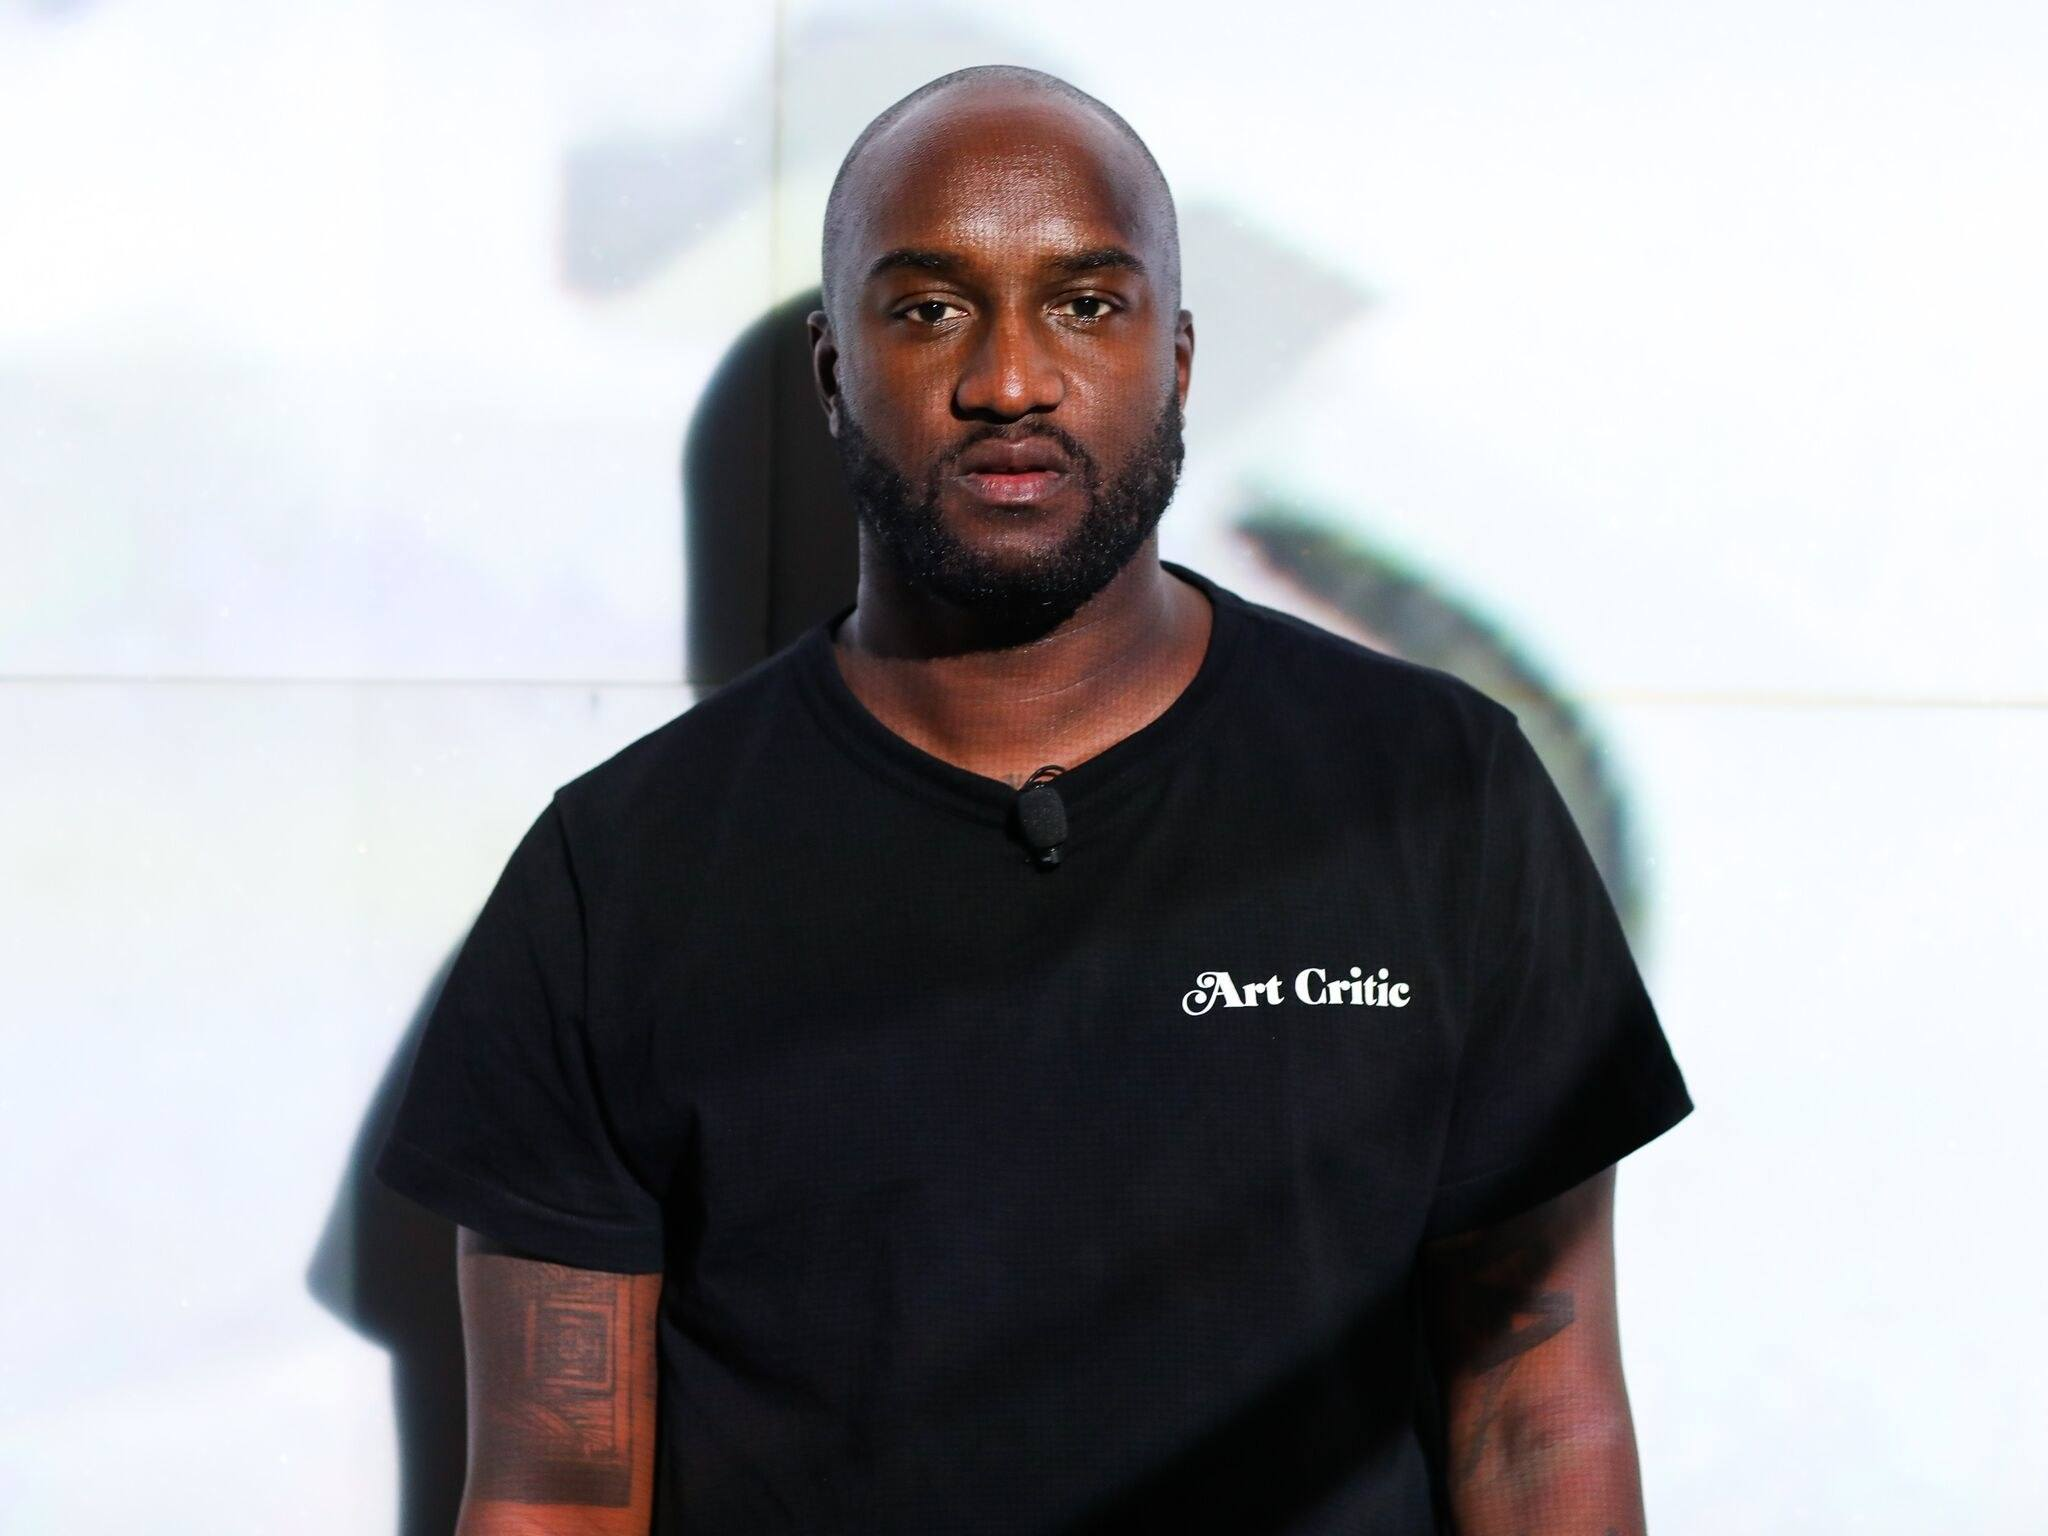 virgil abloh logra que su nueva colecci n sea reconocida como el calzado del a o. Black Bedroom Furniture Sets. Home Design Ideas